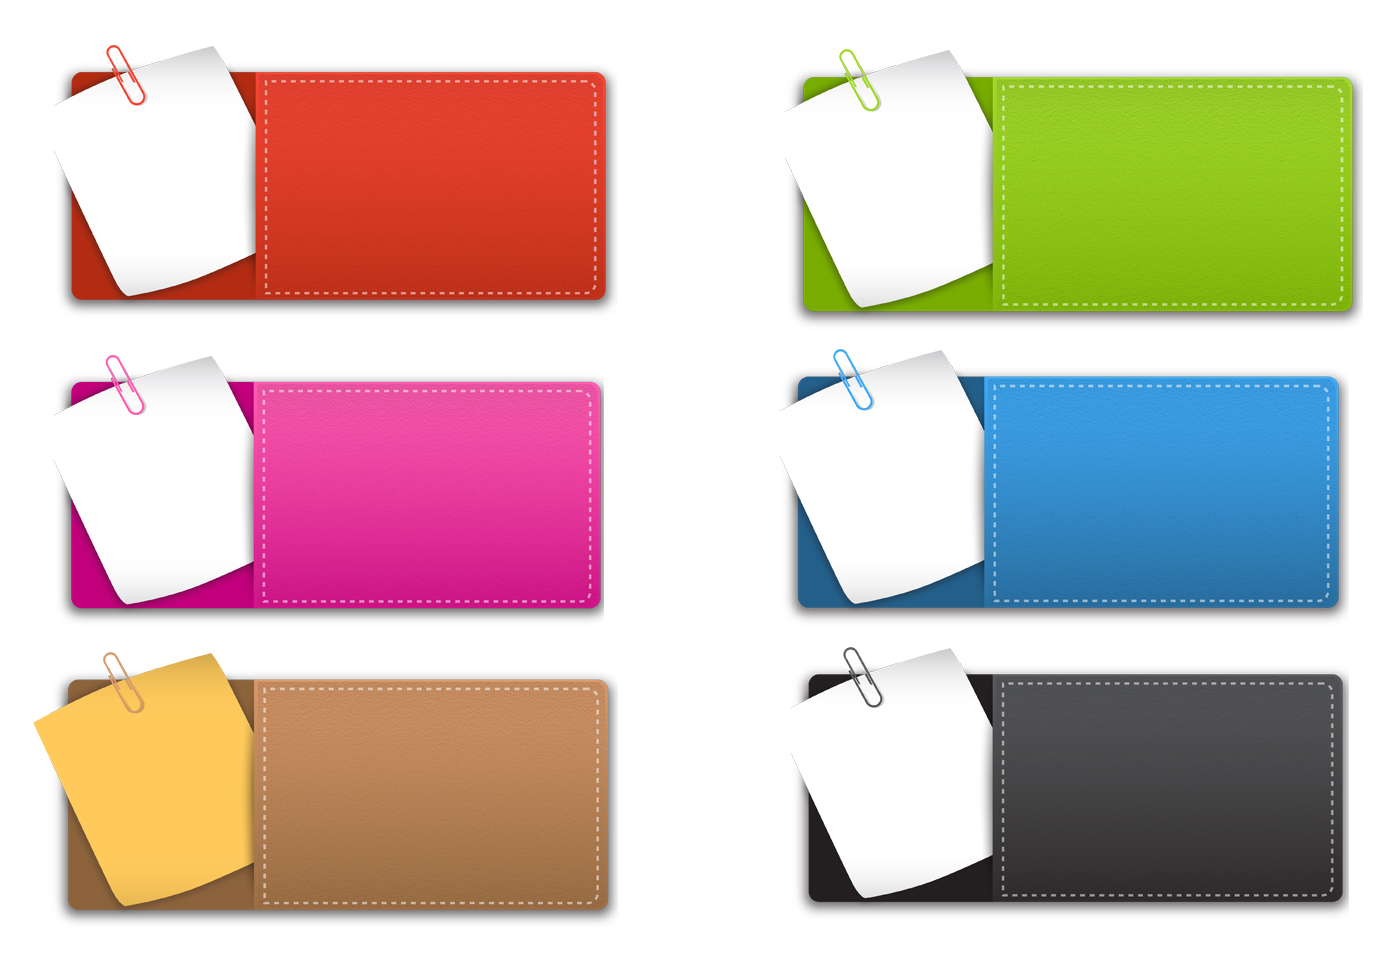 Sticky Note Banner Psd Pack